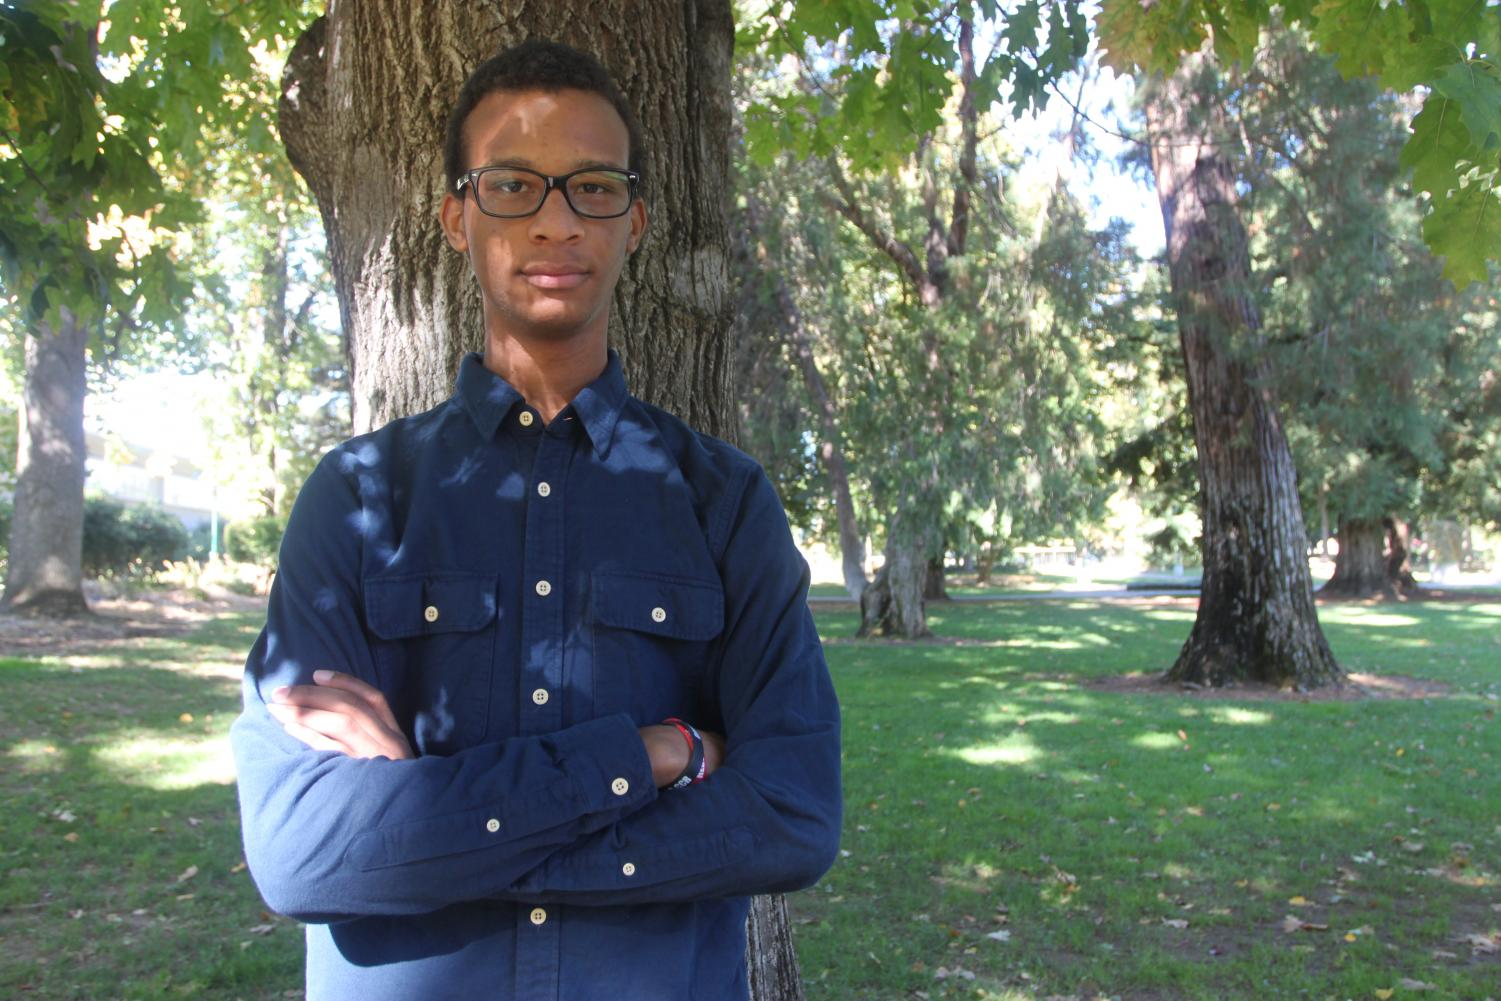 Political science major Floyd Johnson II, vice president of the Sacramento State College Republicans, said he has always been interested in the intricacies of how guns work as well as gun rights.